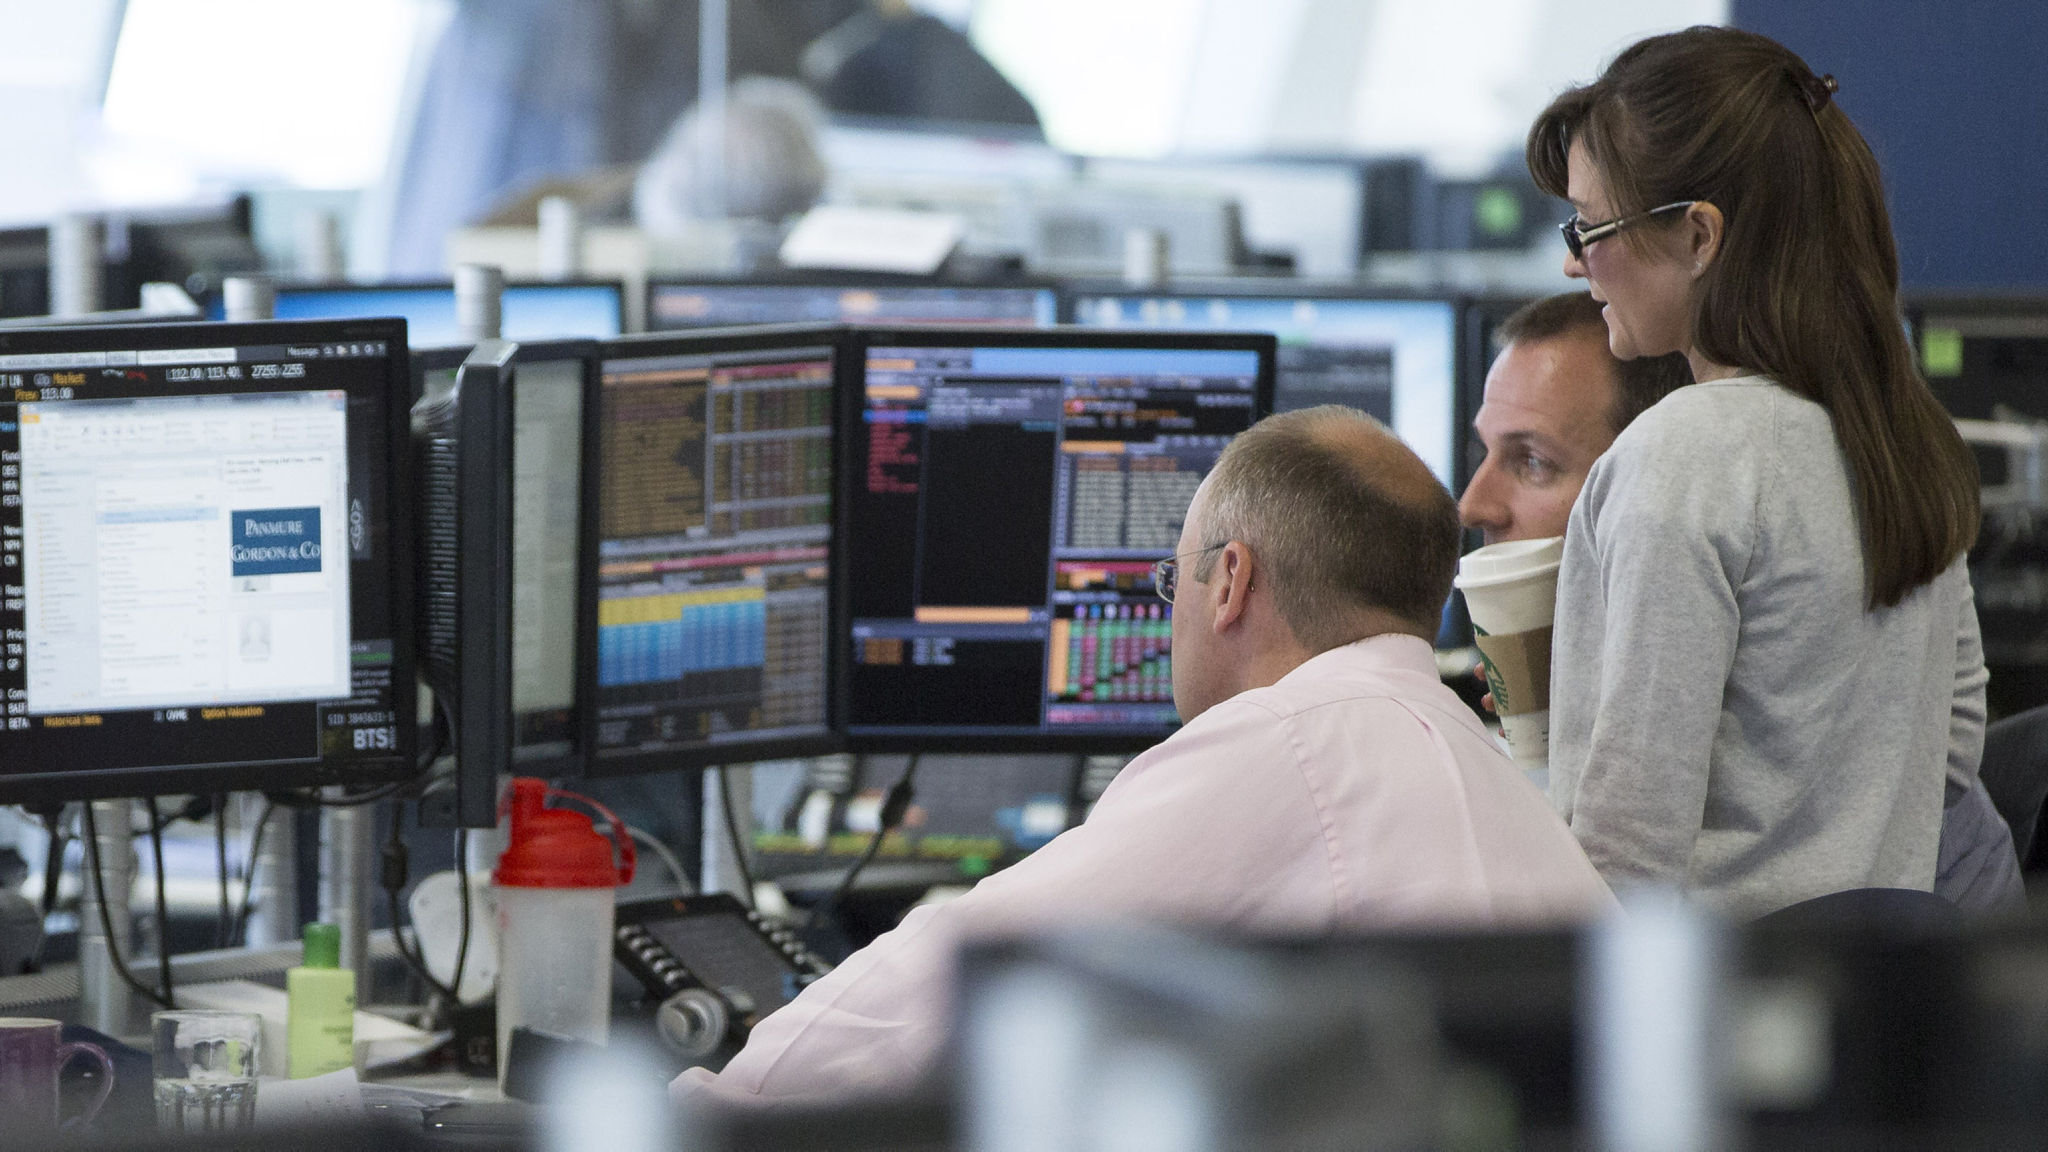 Europe's traders call for shorter working day   Financial Times